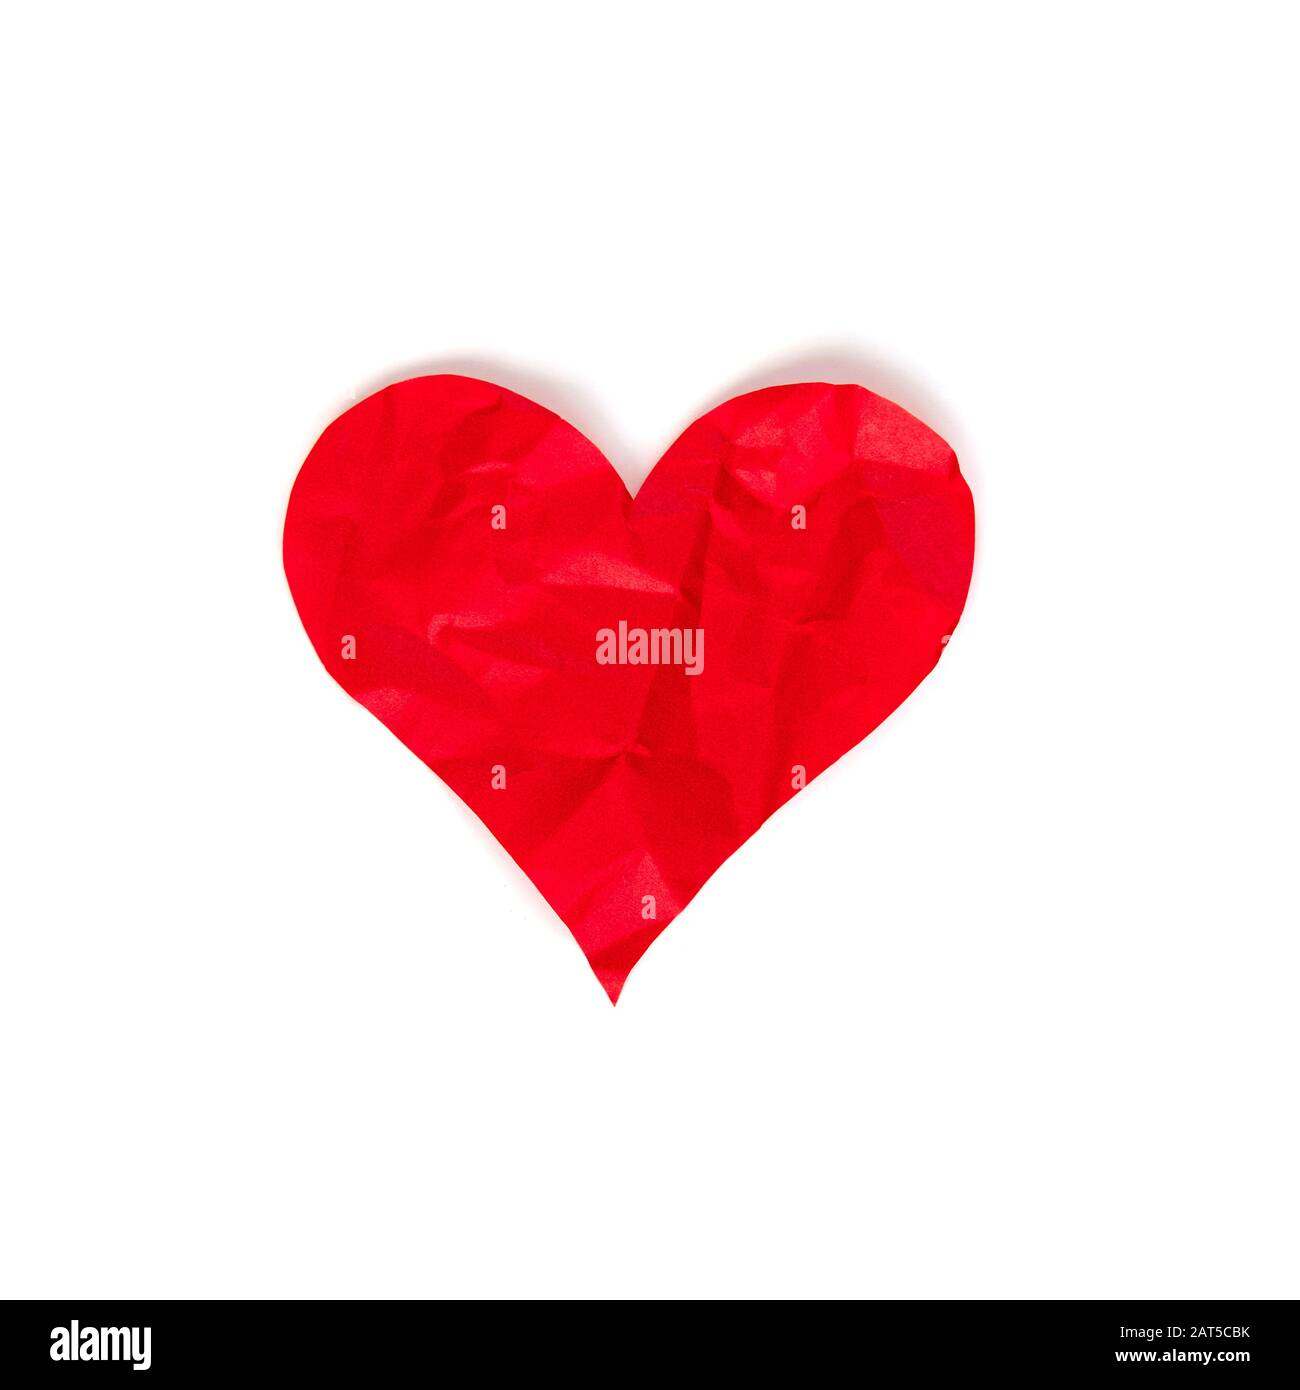 Page 3 Heartbroken Love High Resolution Stock Photography And Images Alamy